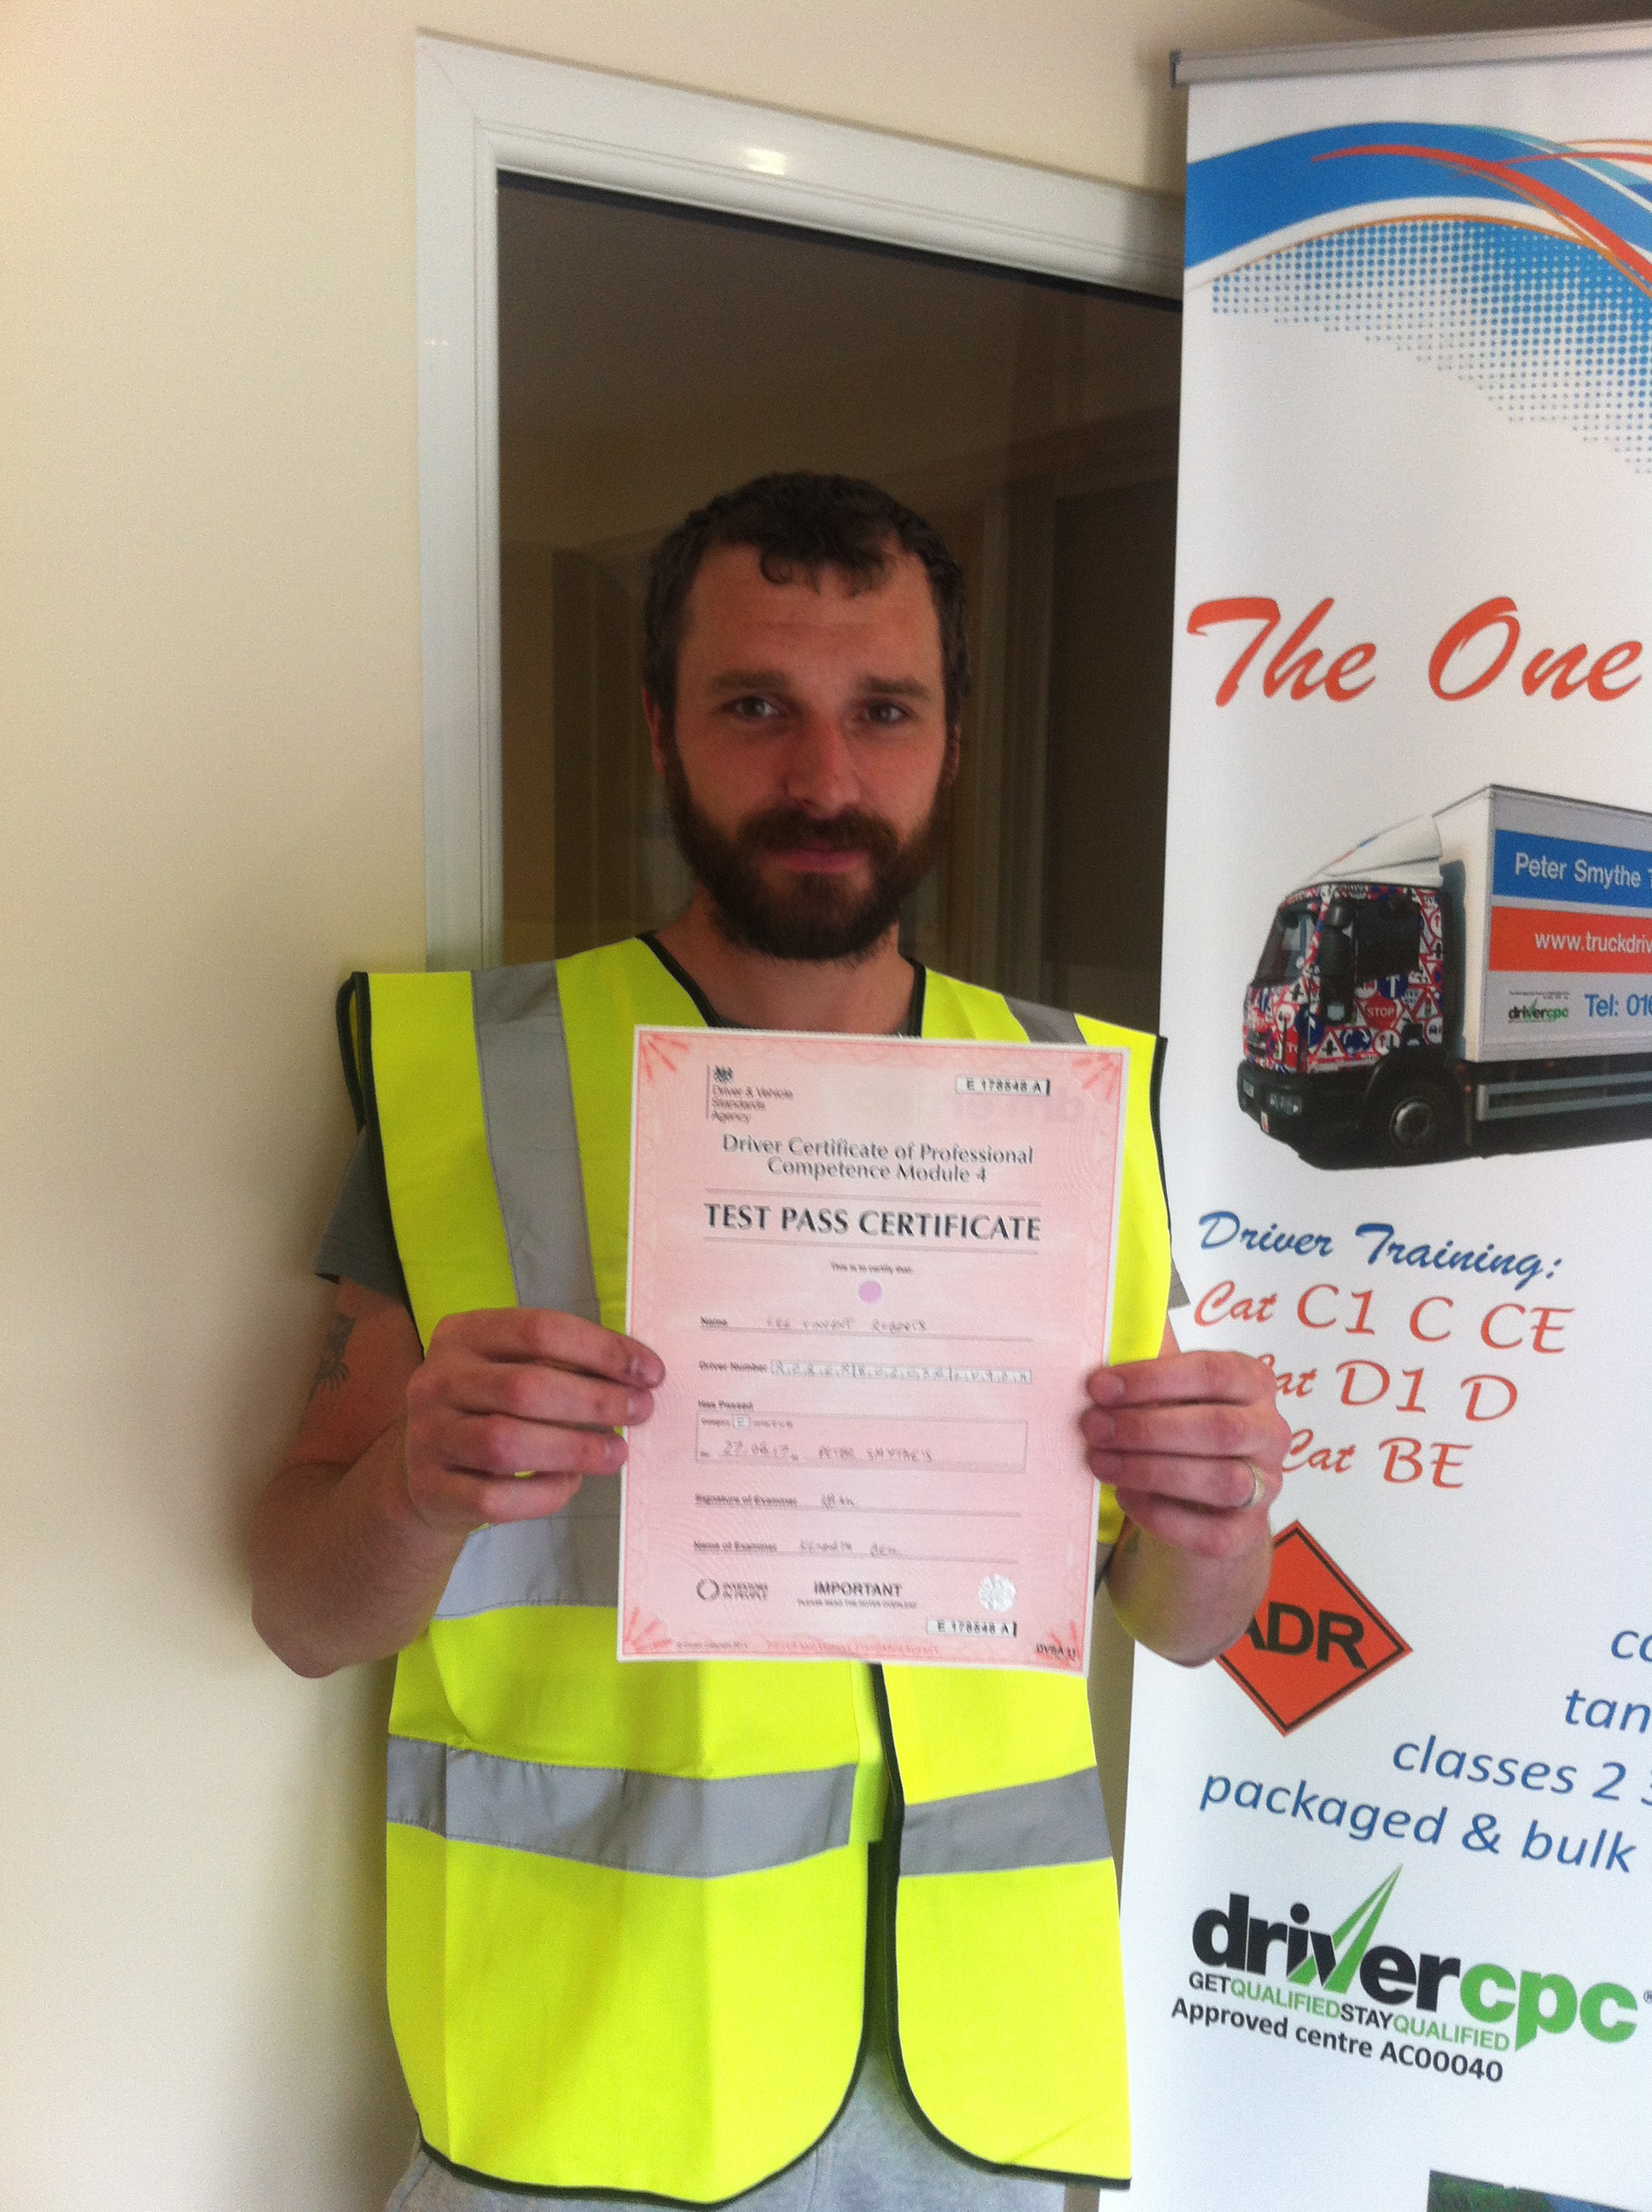 Lee Roberts from Shirebrook PASSED CPC MOD 4